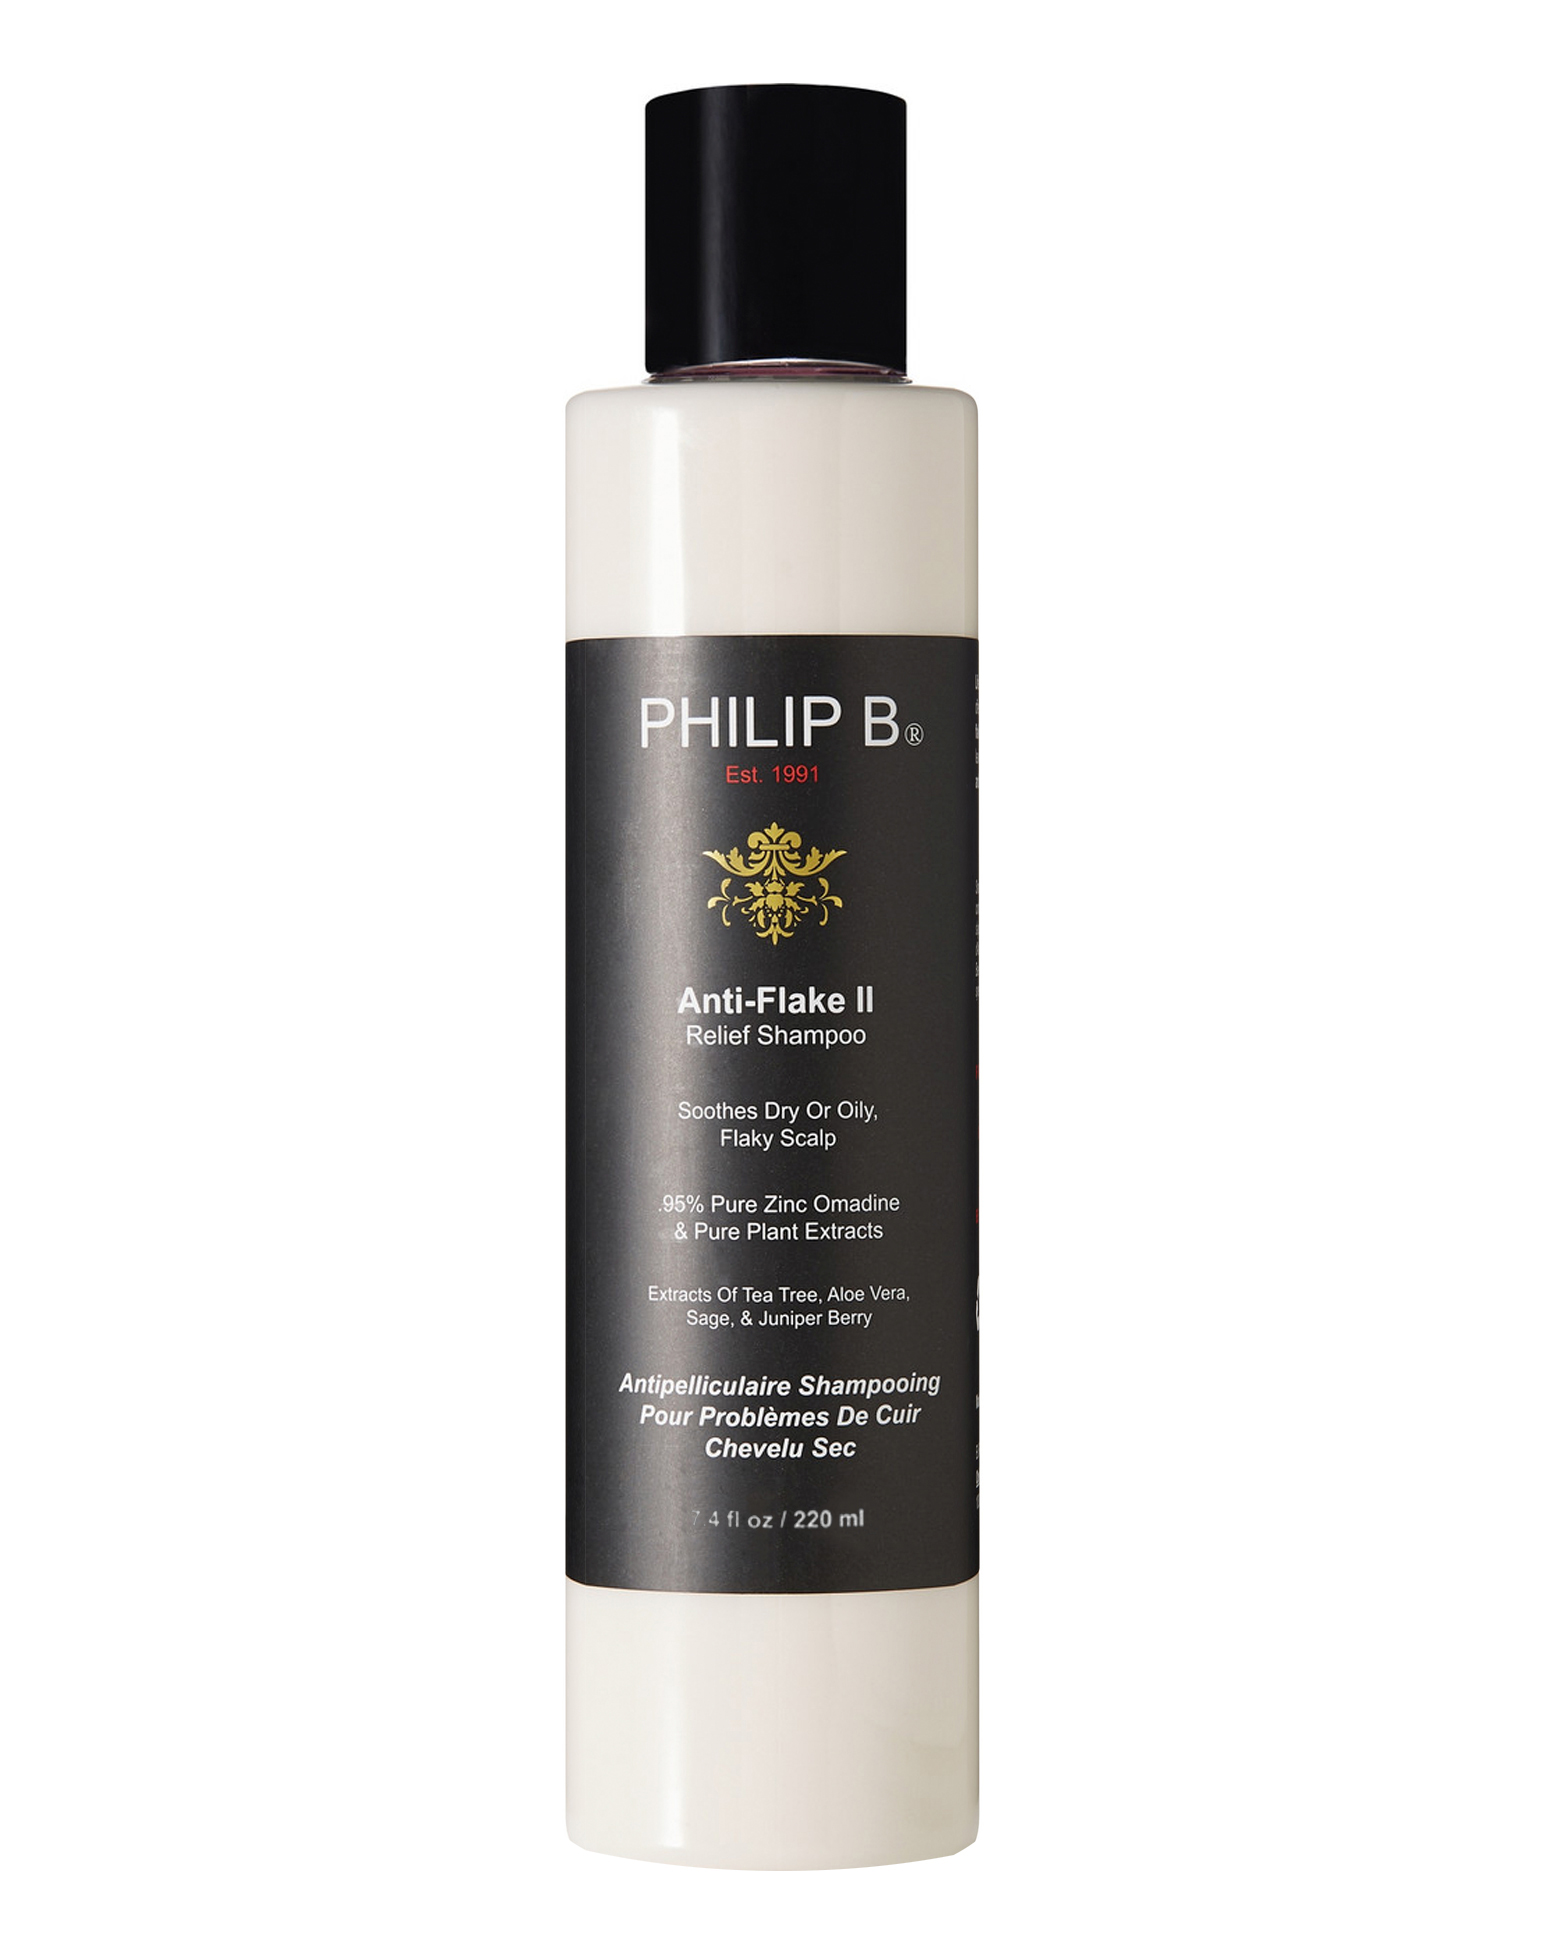 Philip B Anti Flake II Relief Shampoo